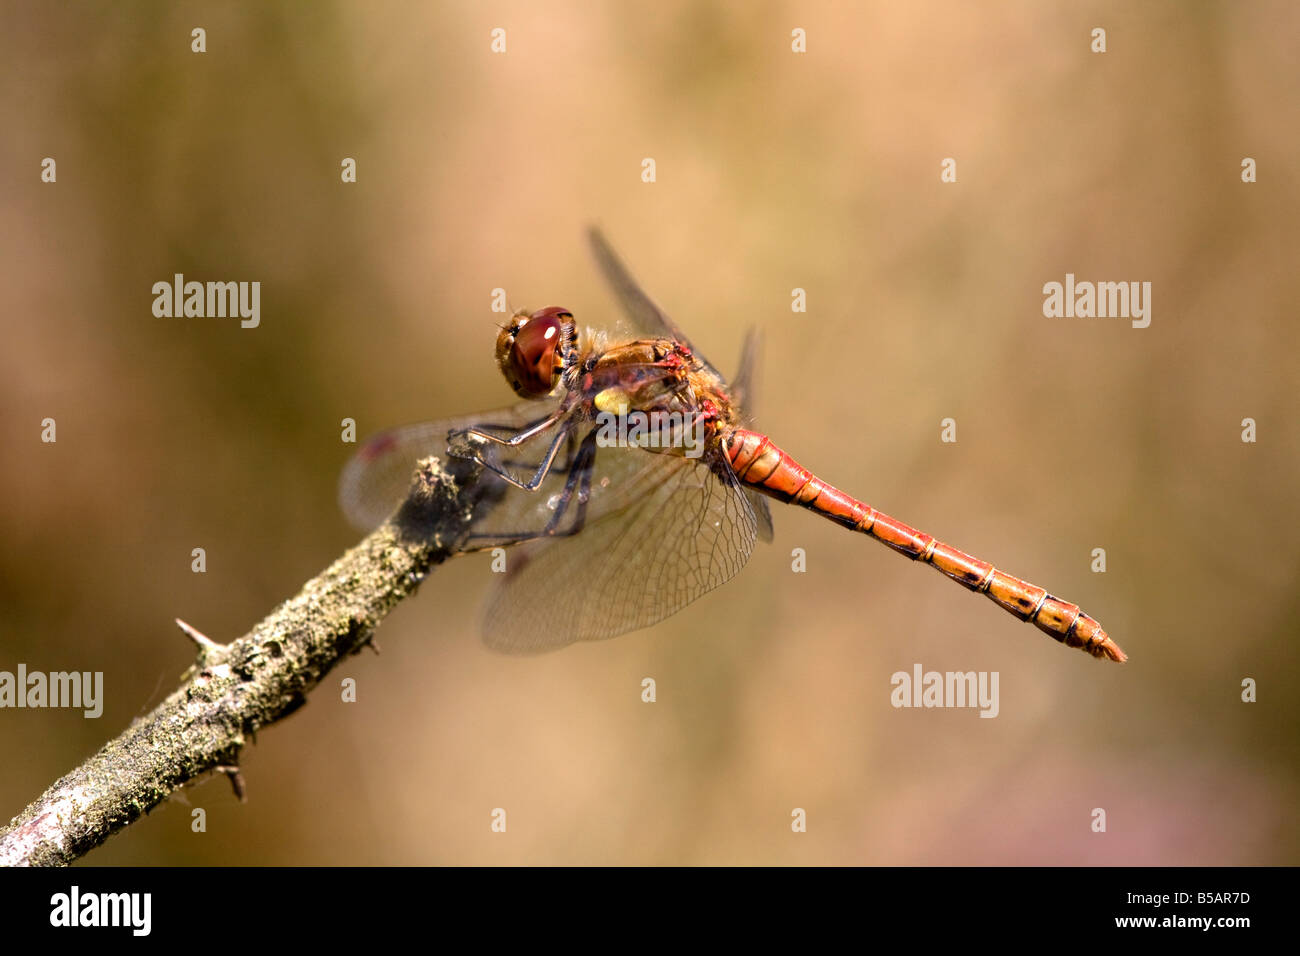 common darter Sympetrum striolatum male dragonfly - Stock Image